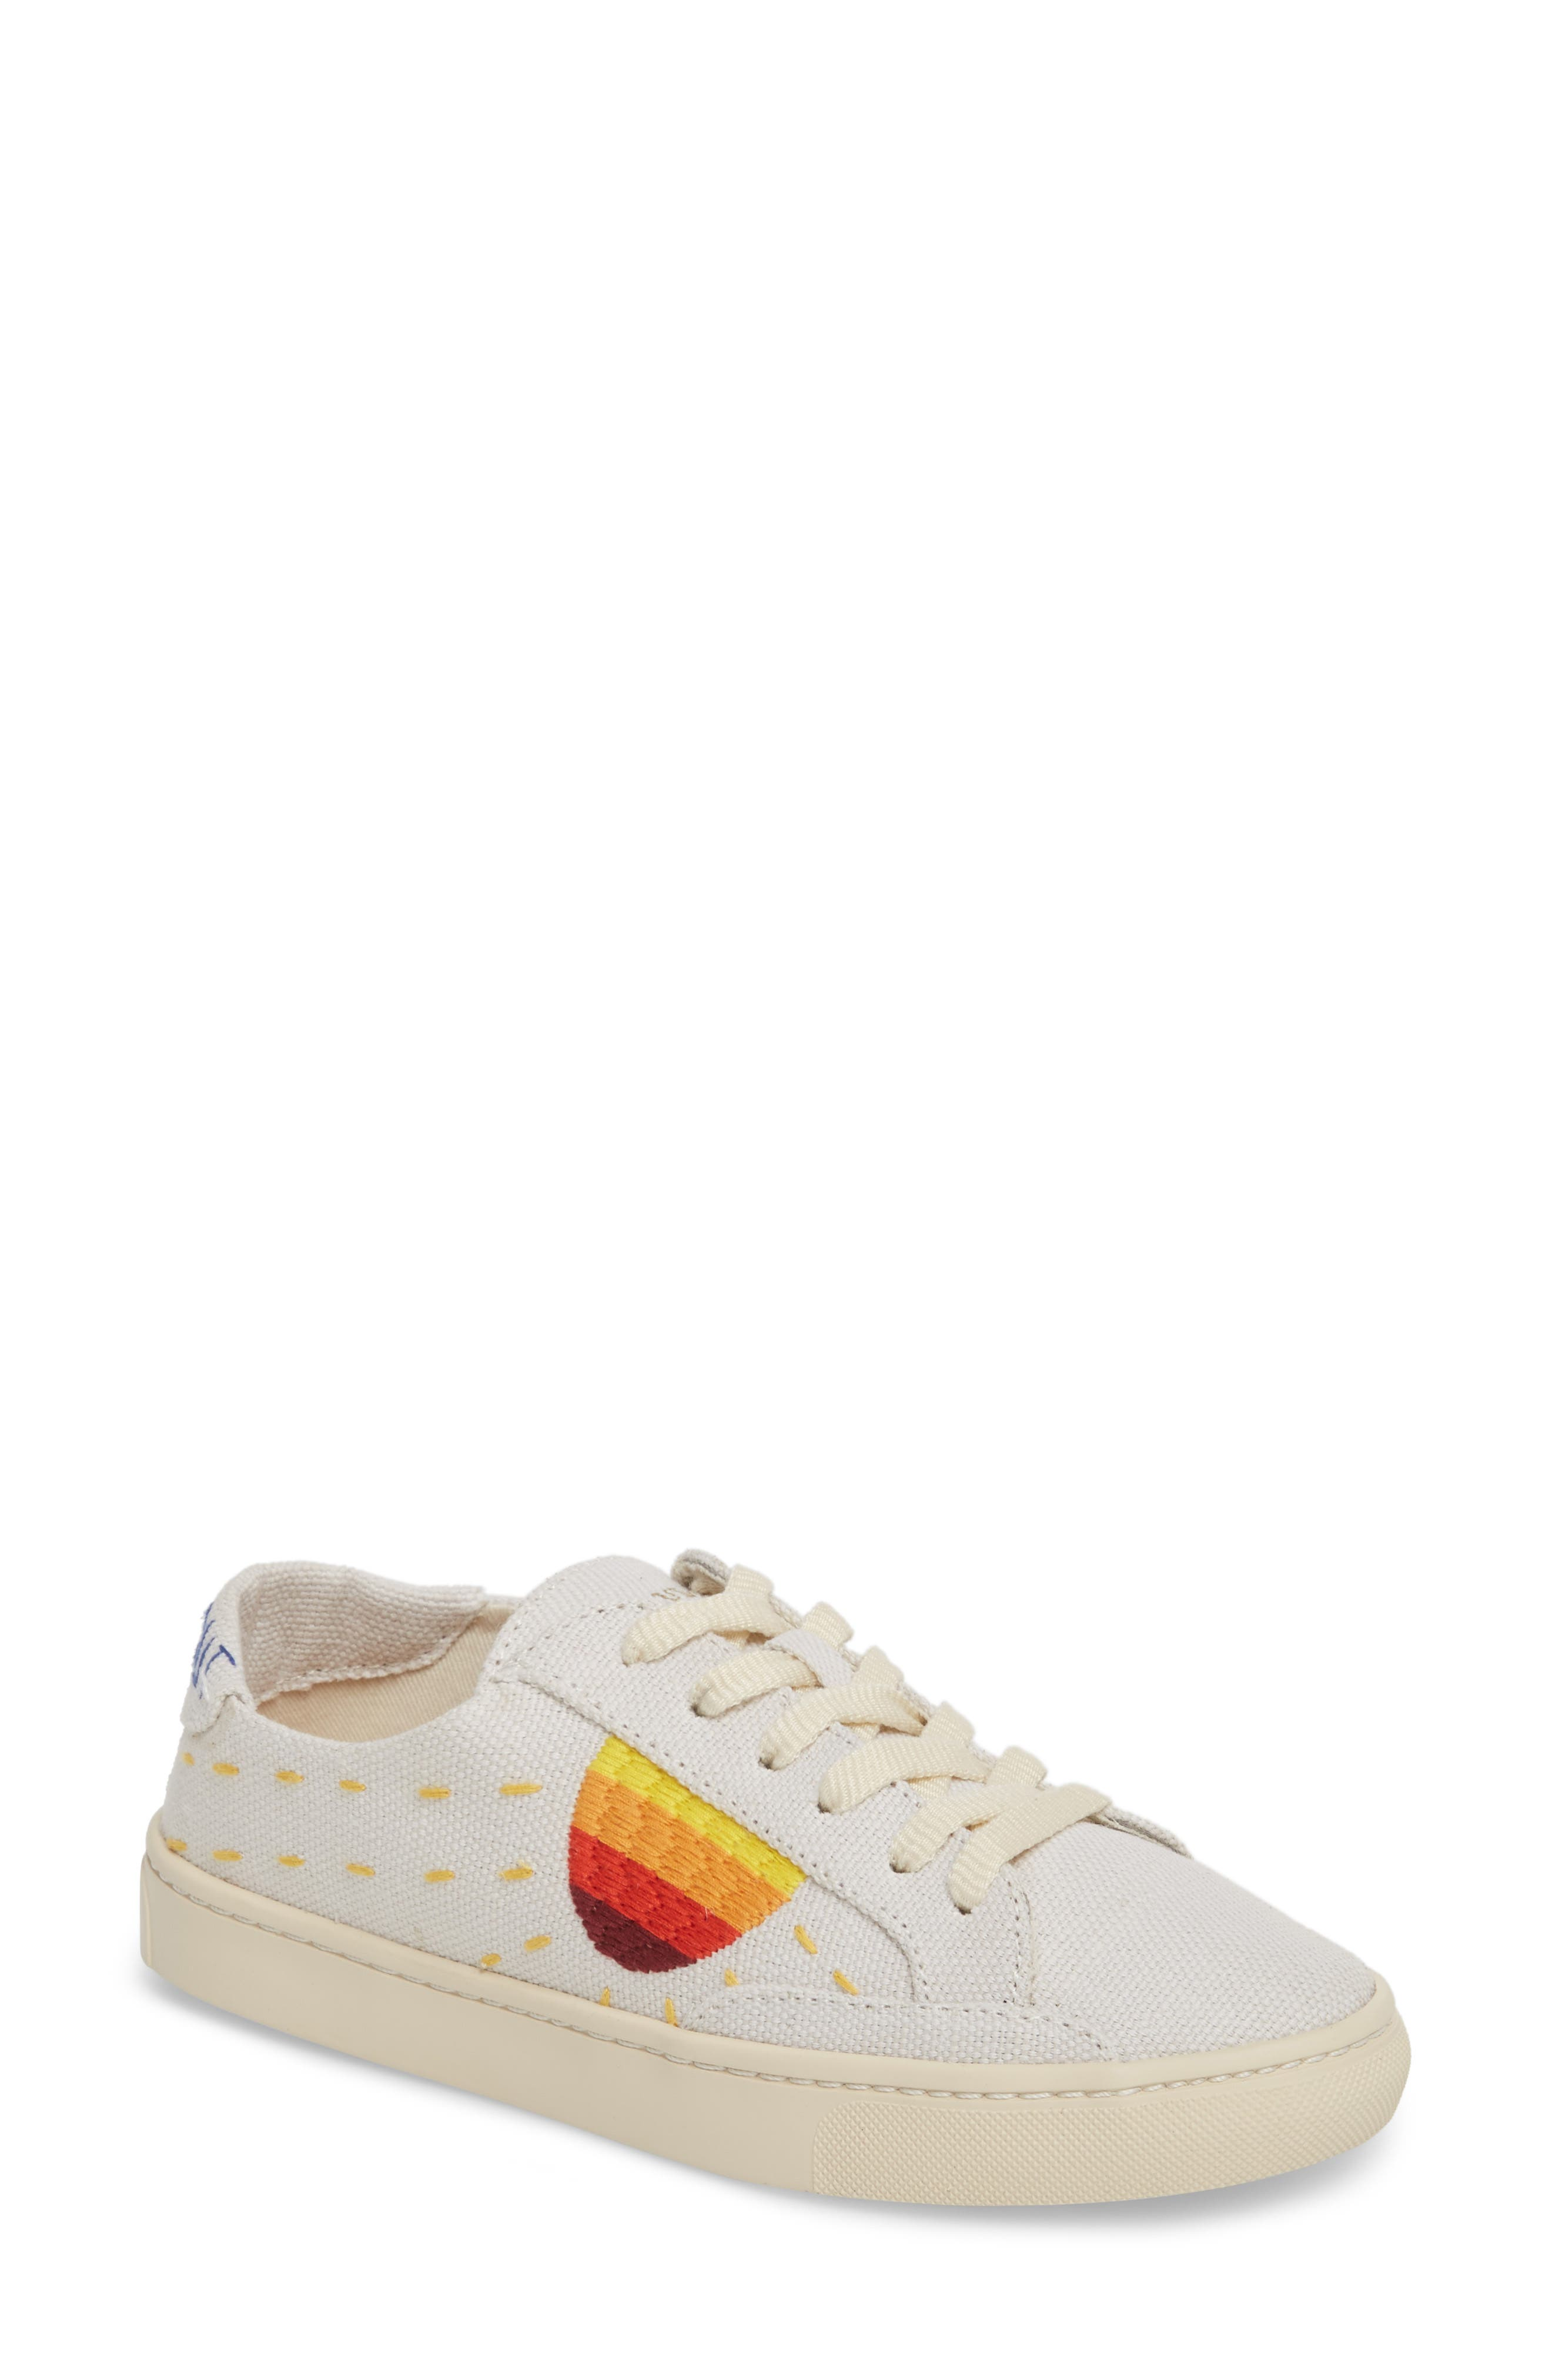 Embroidered Low Top Sneaker,                             Main thumbnail 1, color,                             White Canvas